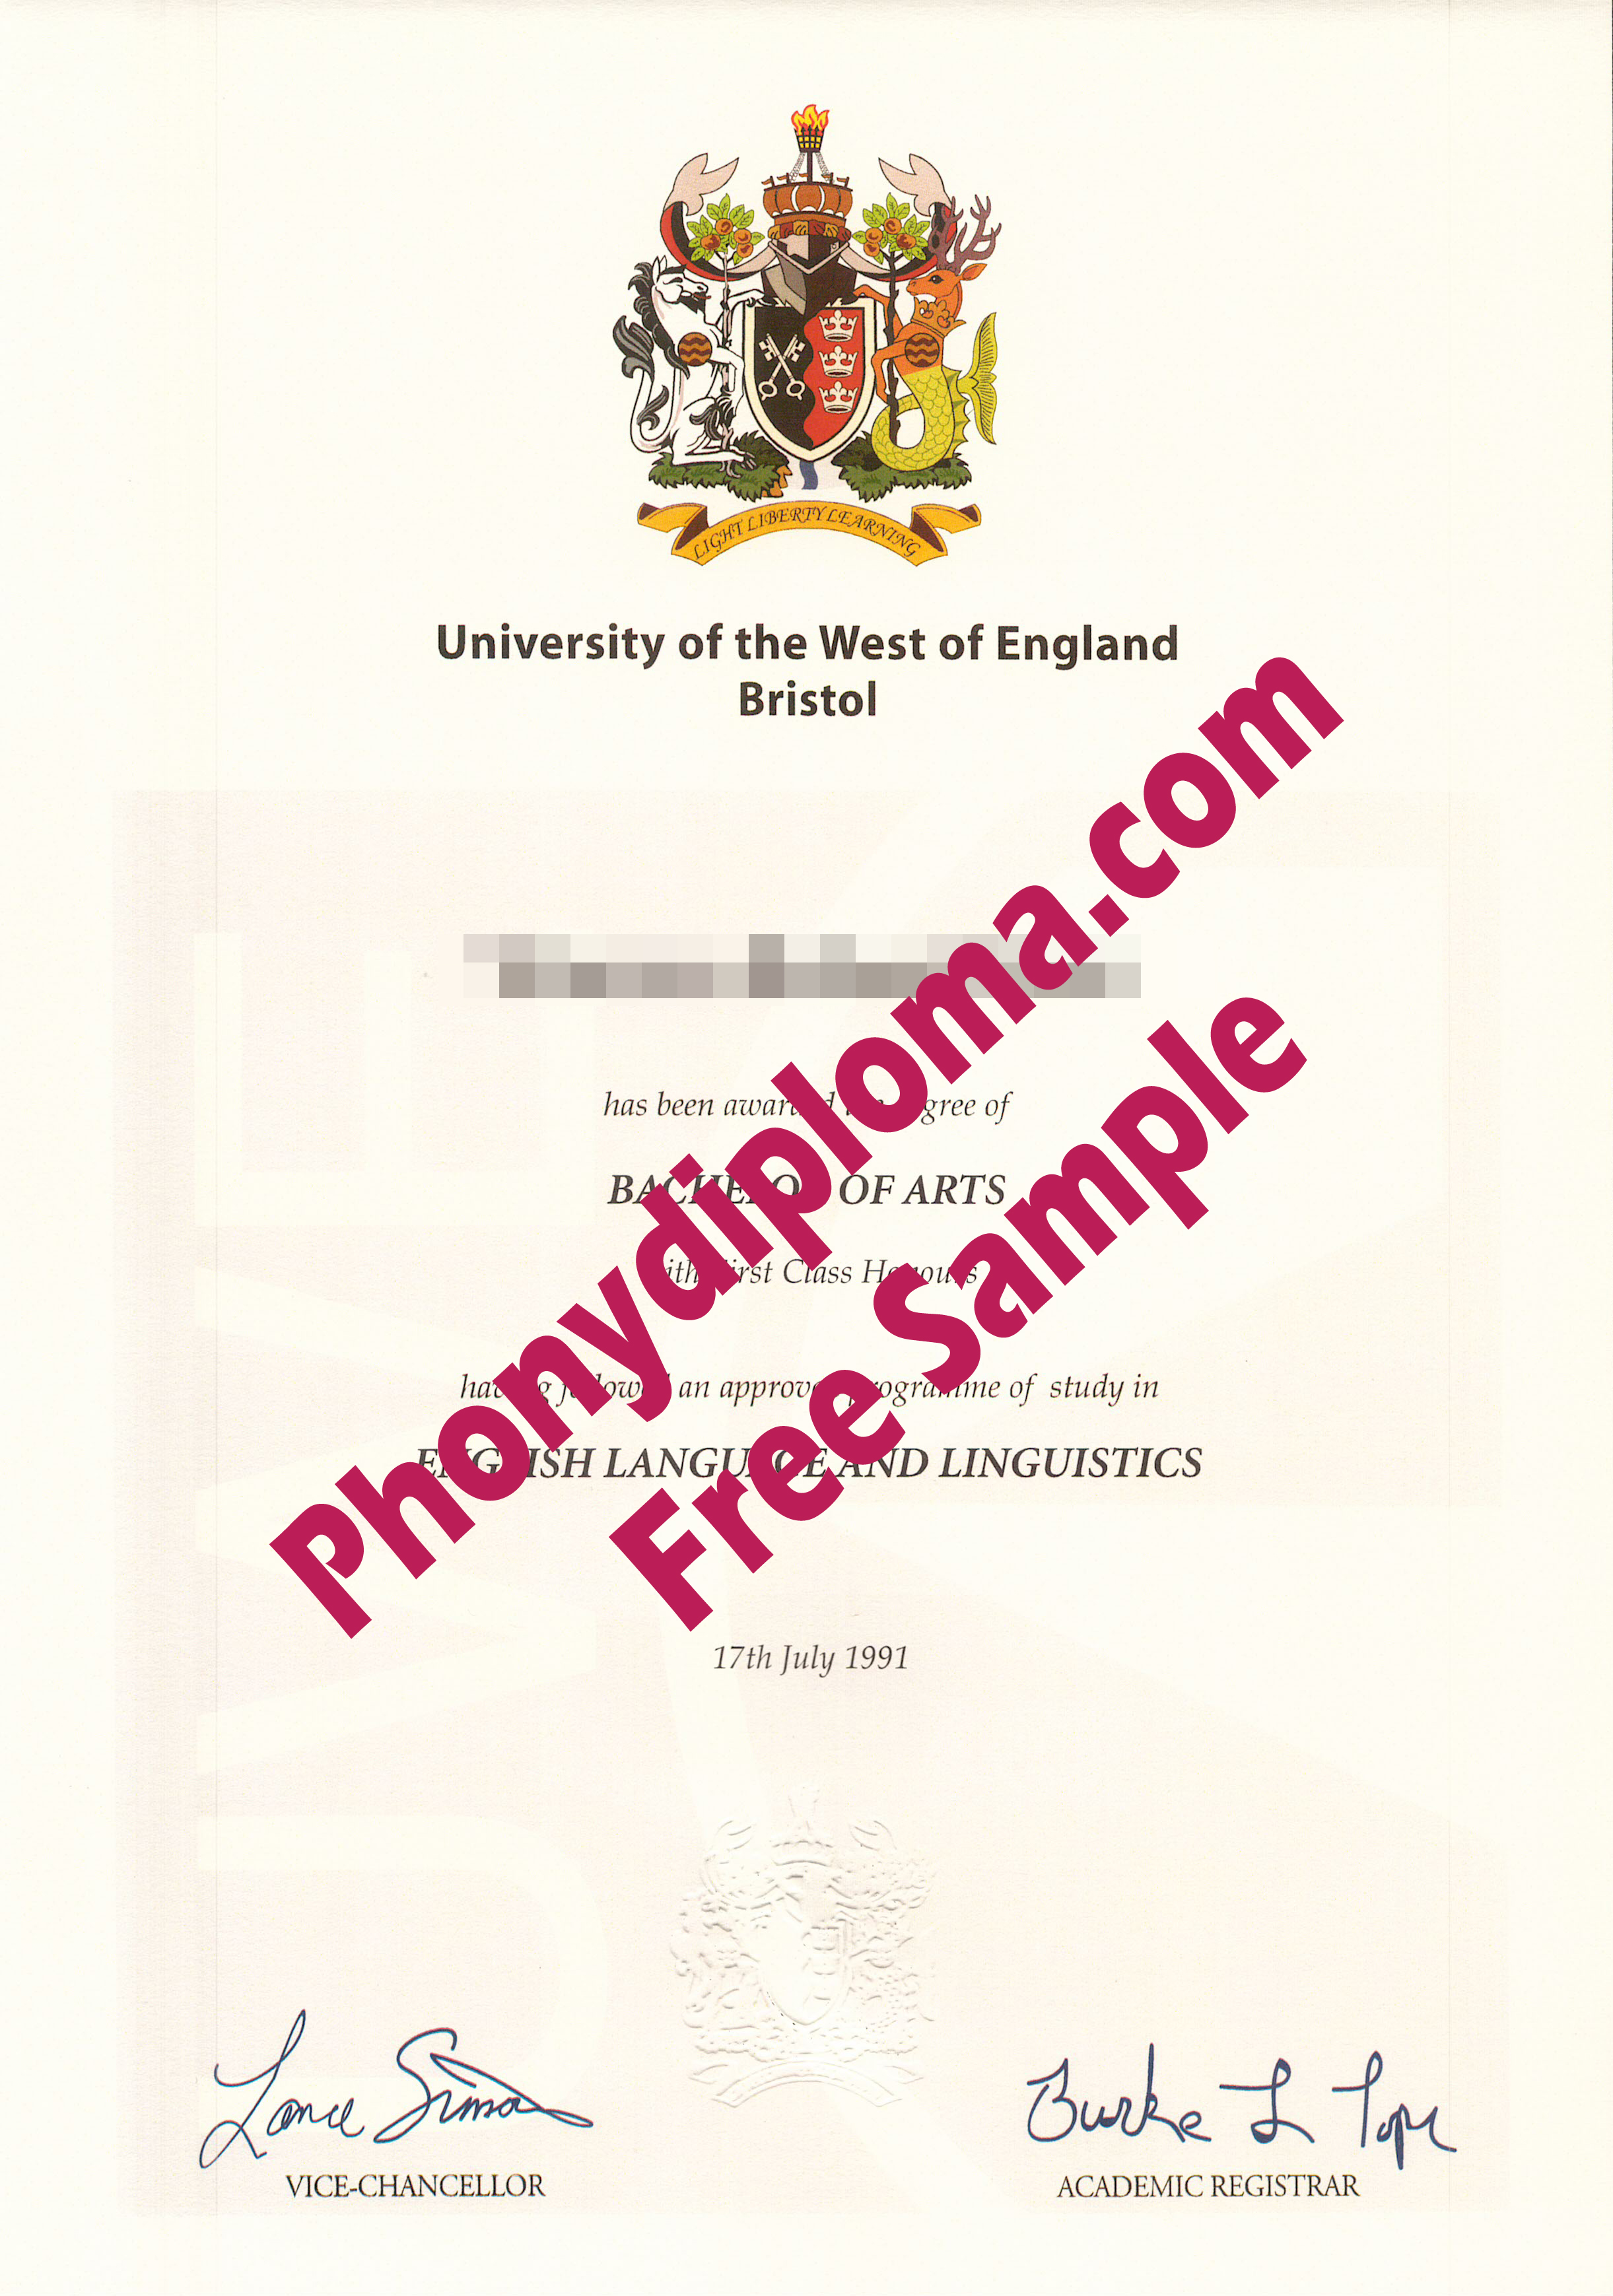 University Of The West Of England Bristol Free Sample From Phonydiploma